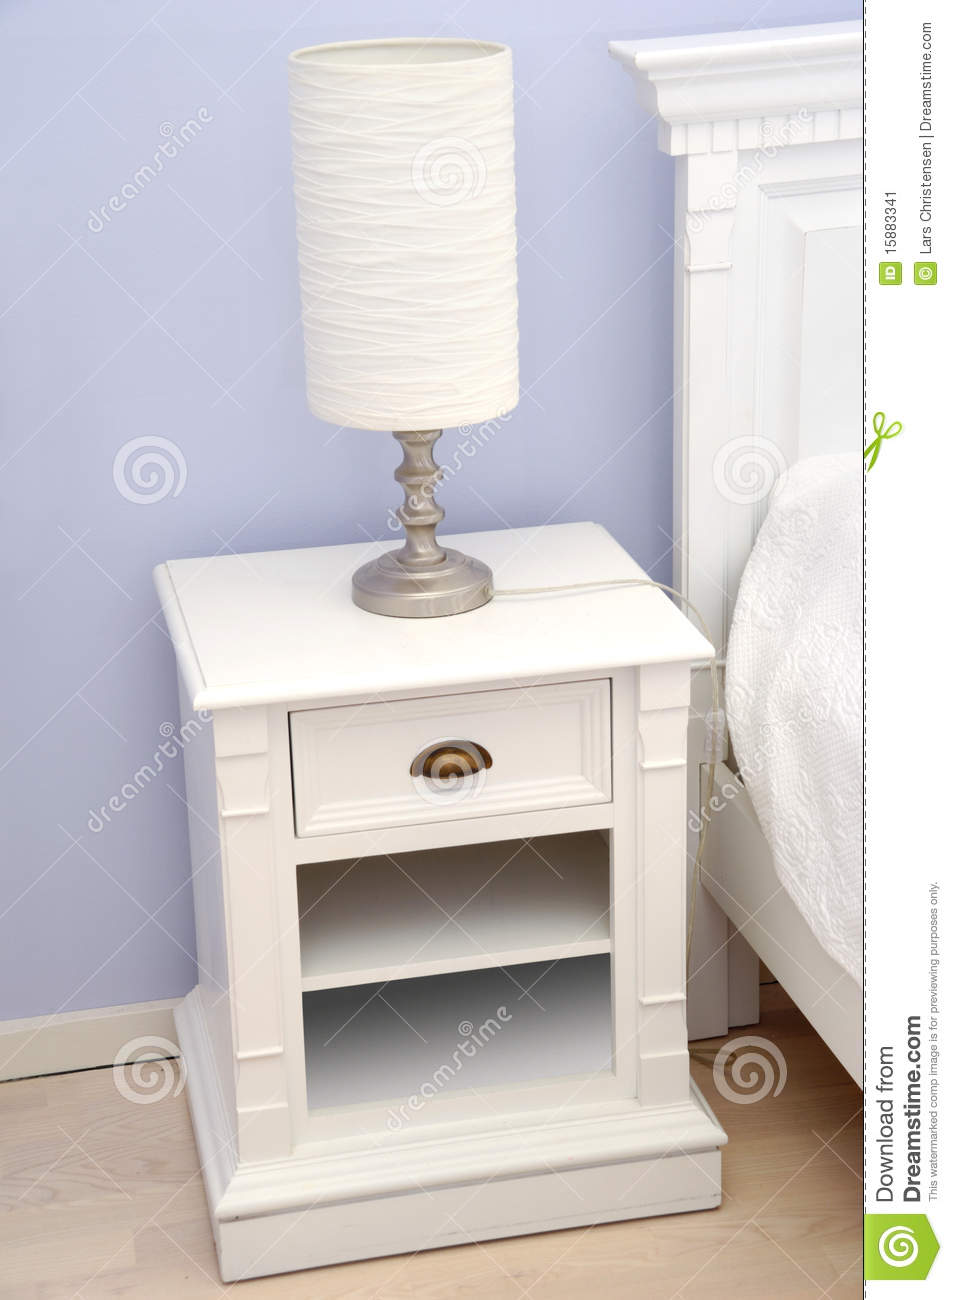 Bedside Table With Lamp Stock Image - Image: 15883341:Bedside table with lamp,Lighting